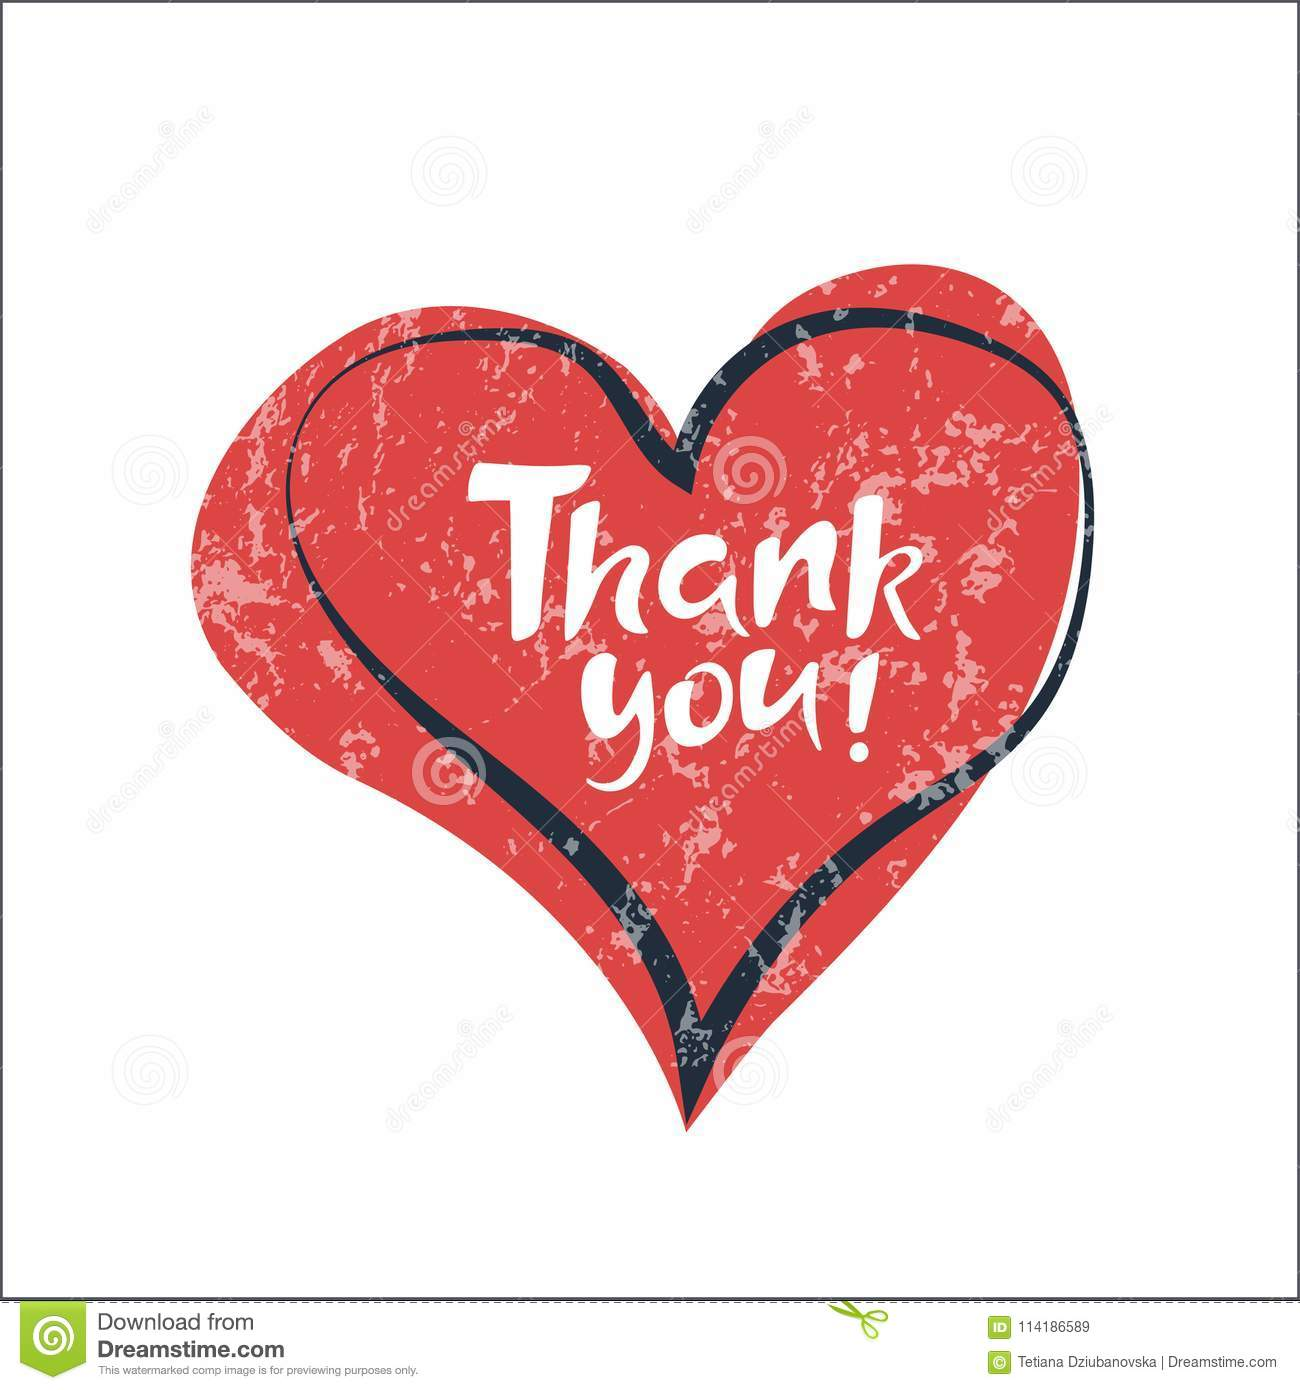 phrase thank you on red heart background lettering artwork for